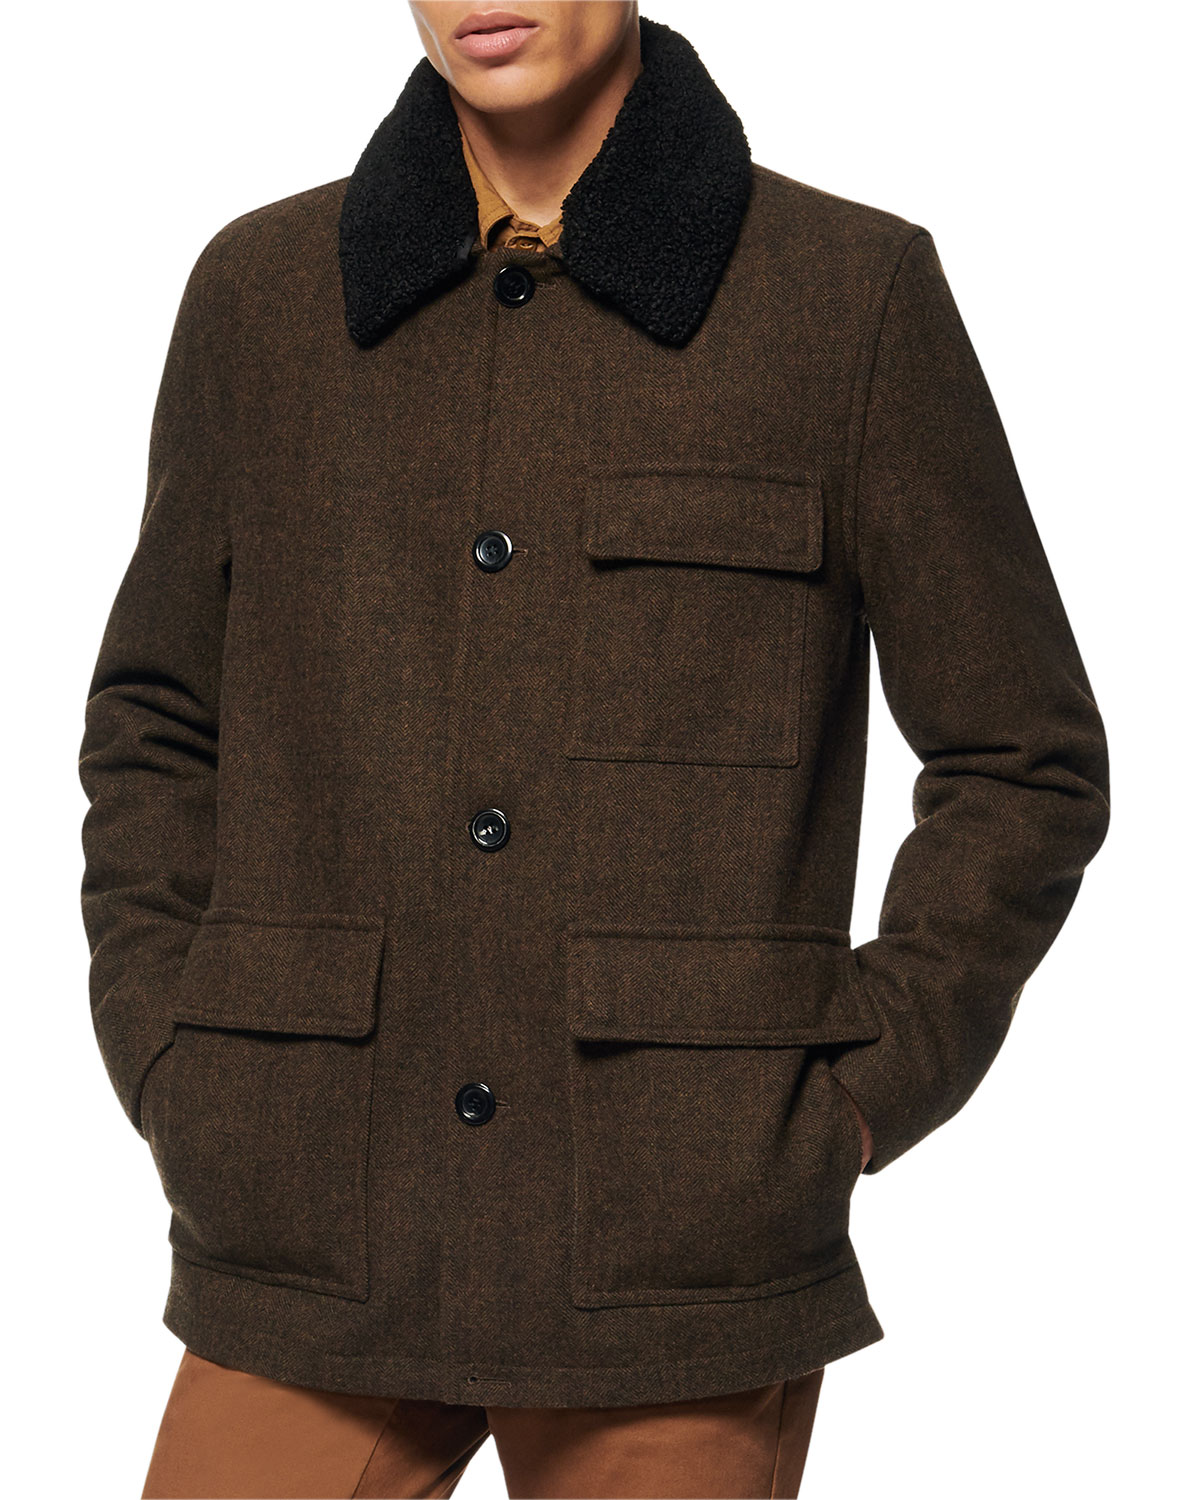 Men's Novelty Wool Chore Coat w/ Removable Faux-Shearling Collar